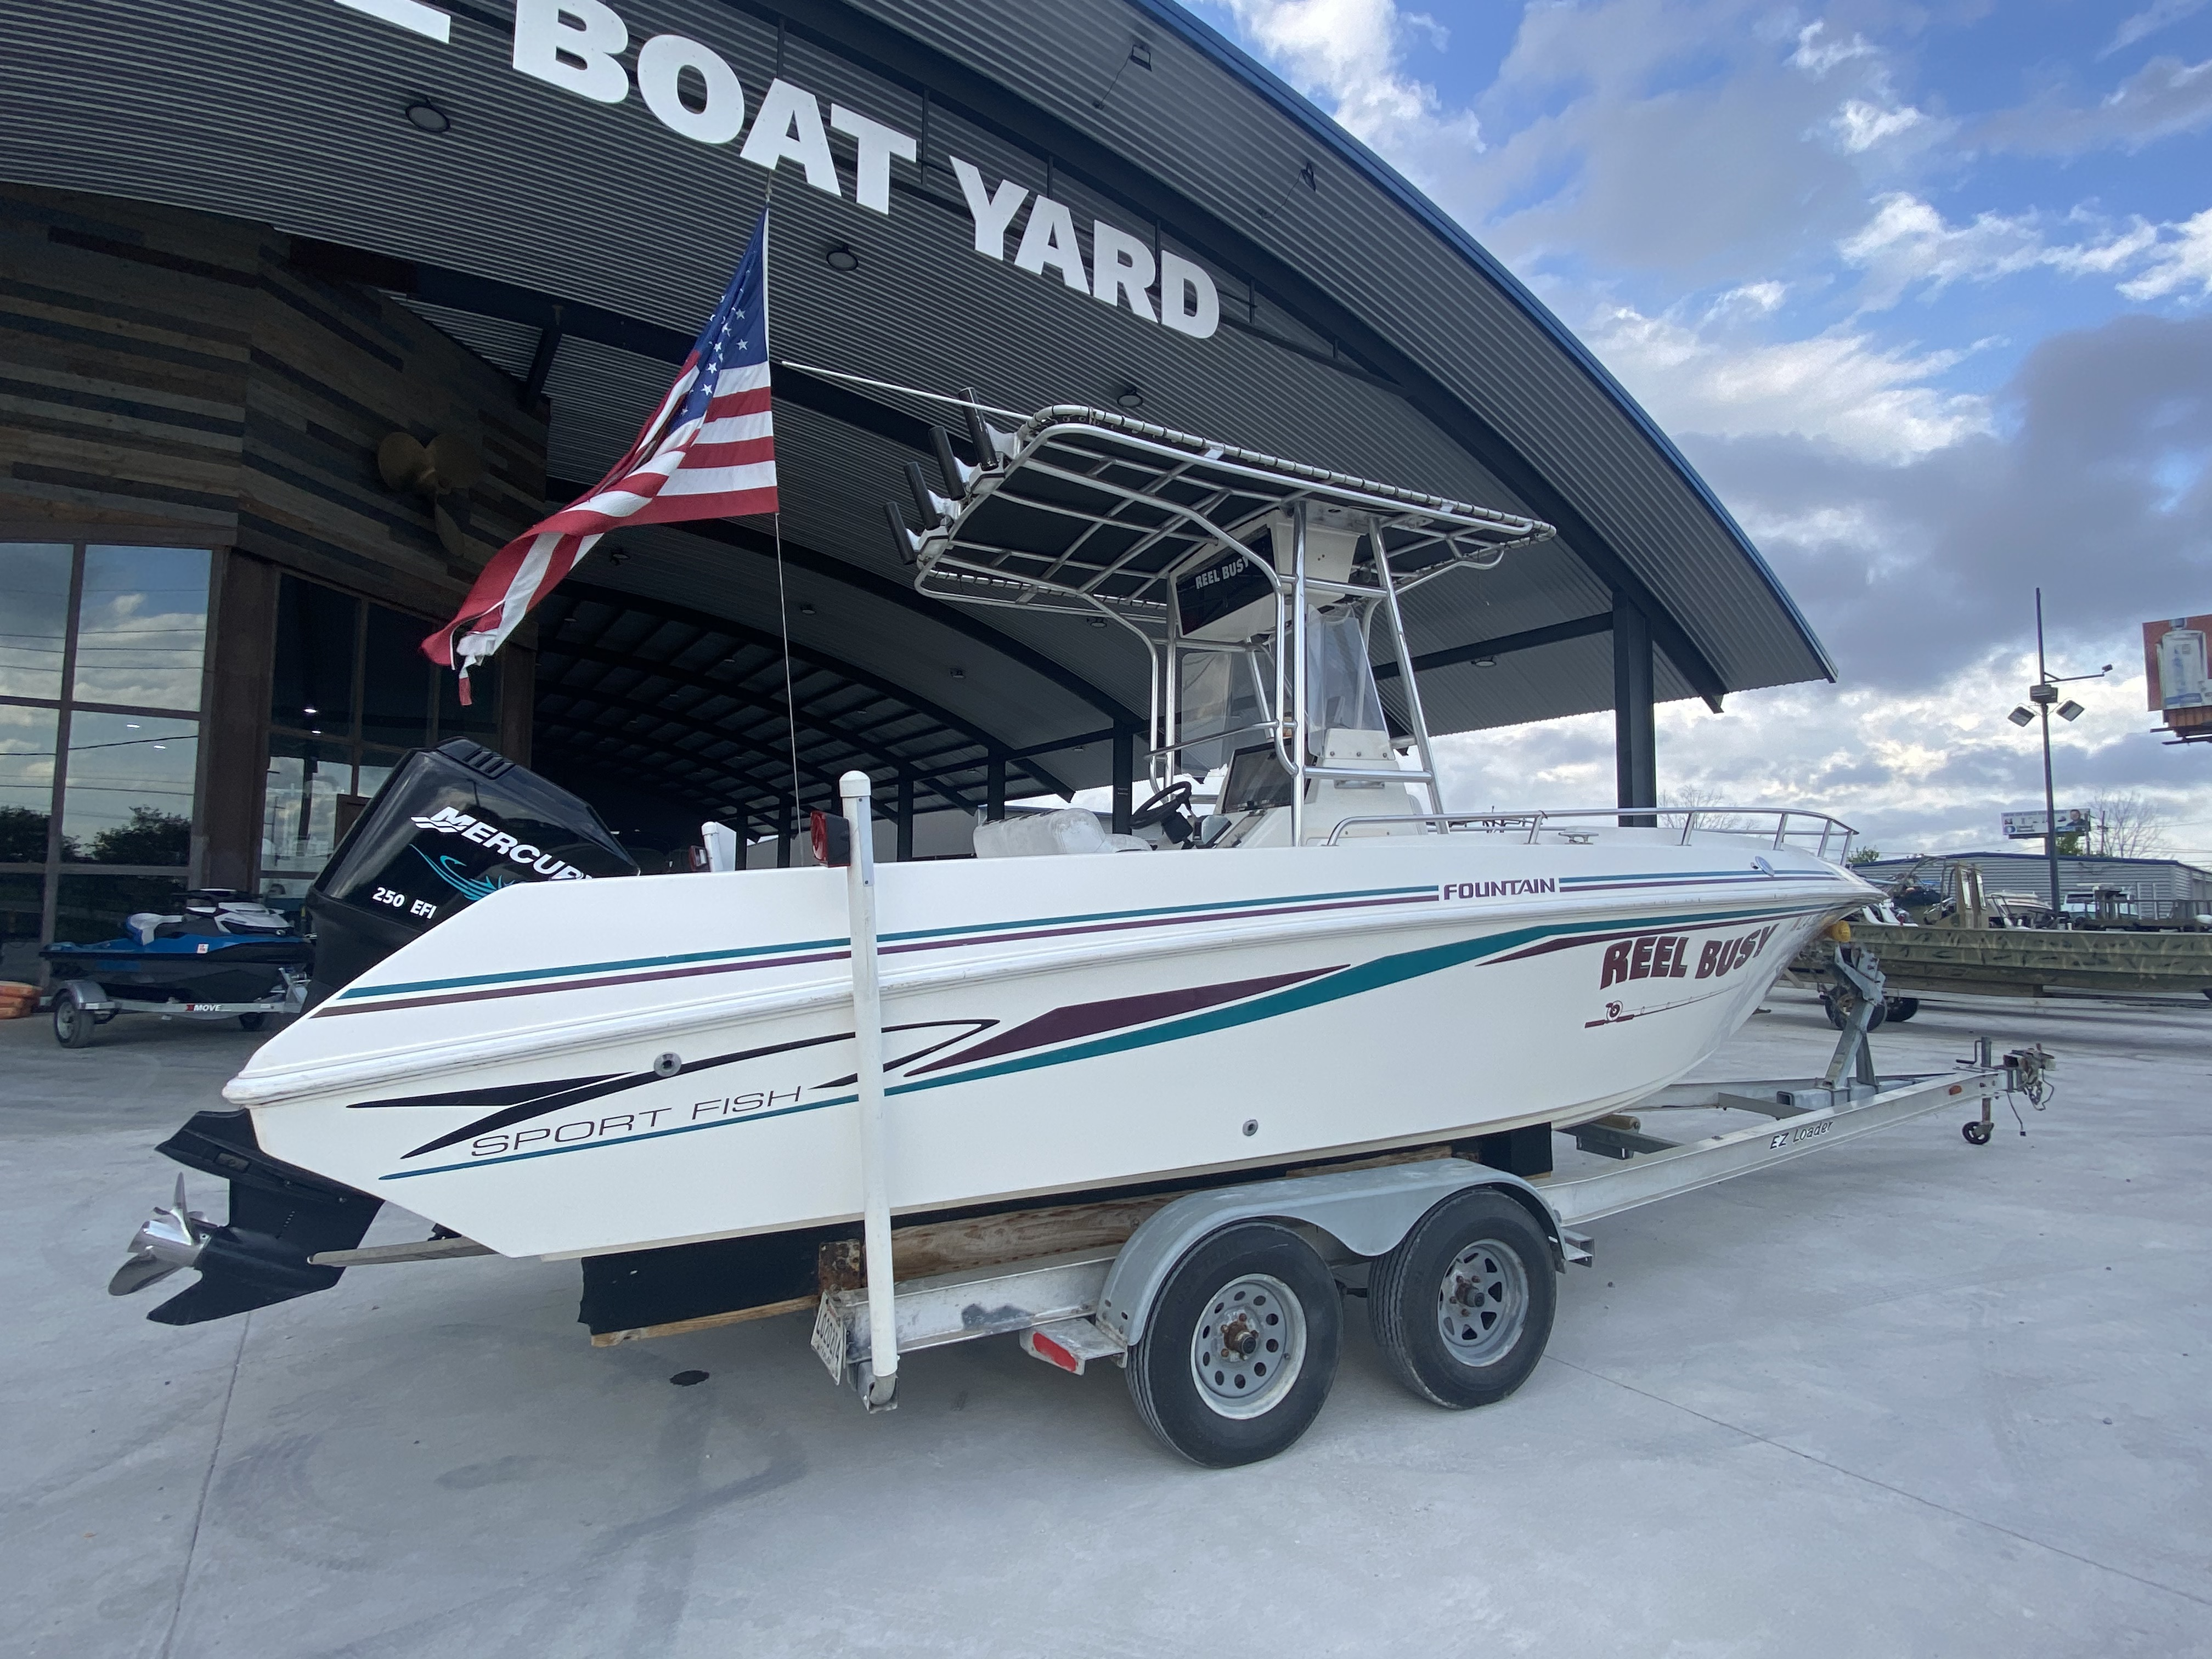 1998 Fountain boat for sale, model of the boat is 25 ft & Image # 5 of 7